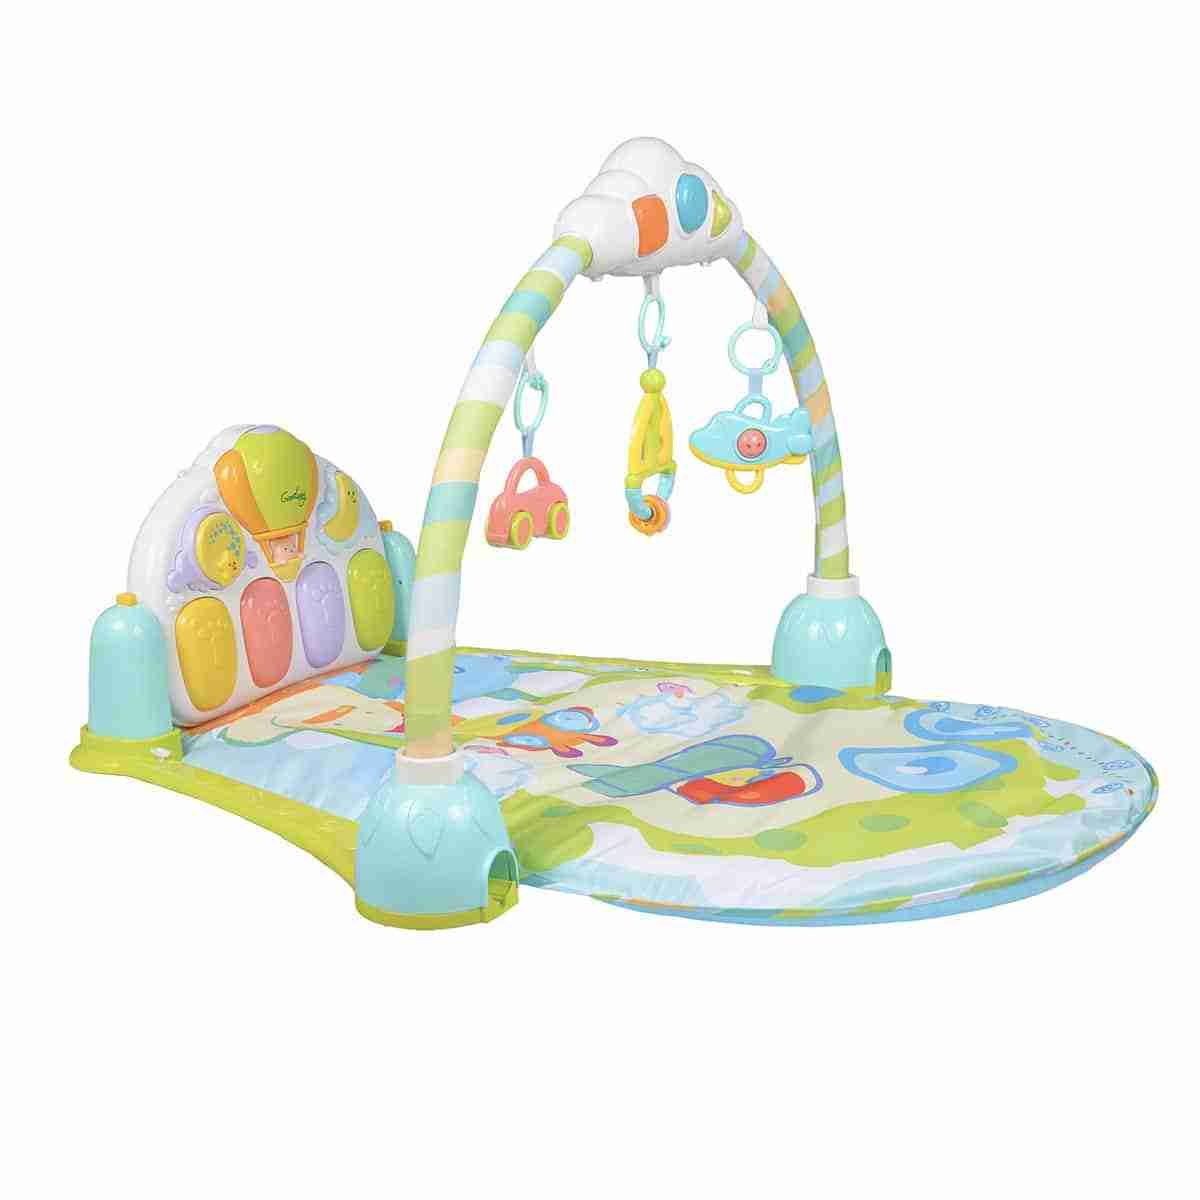 Activity mat perfect for playtime